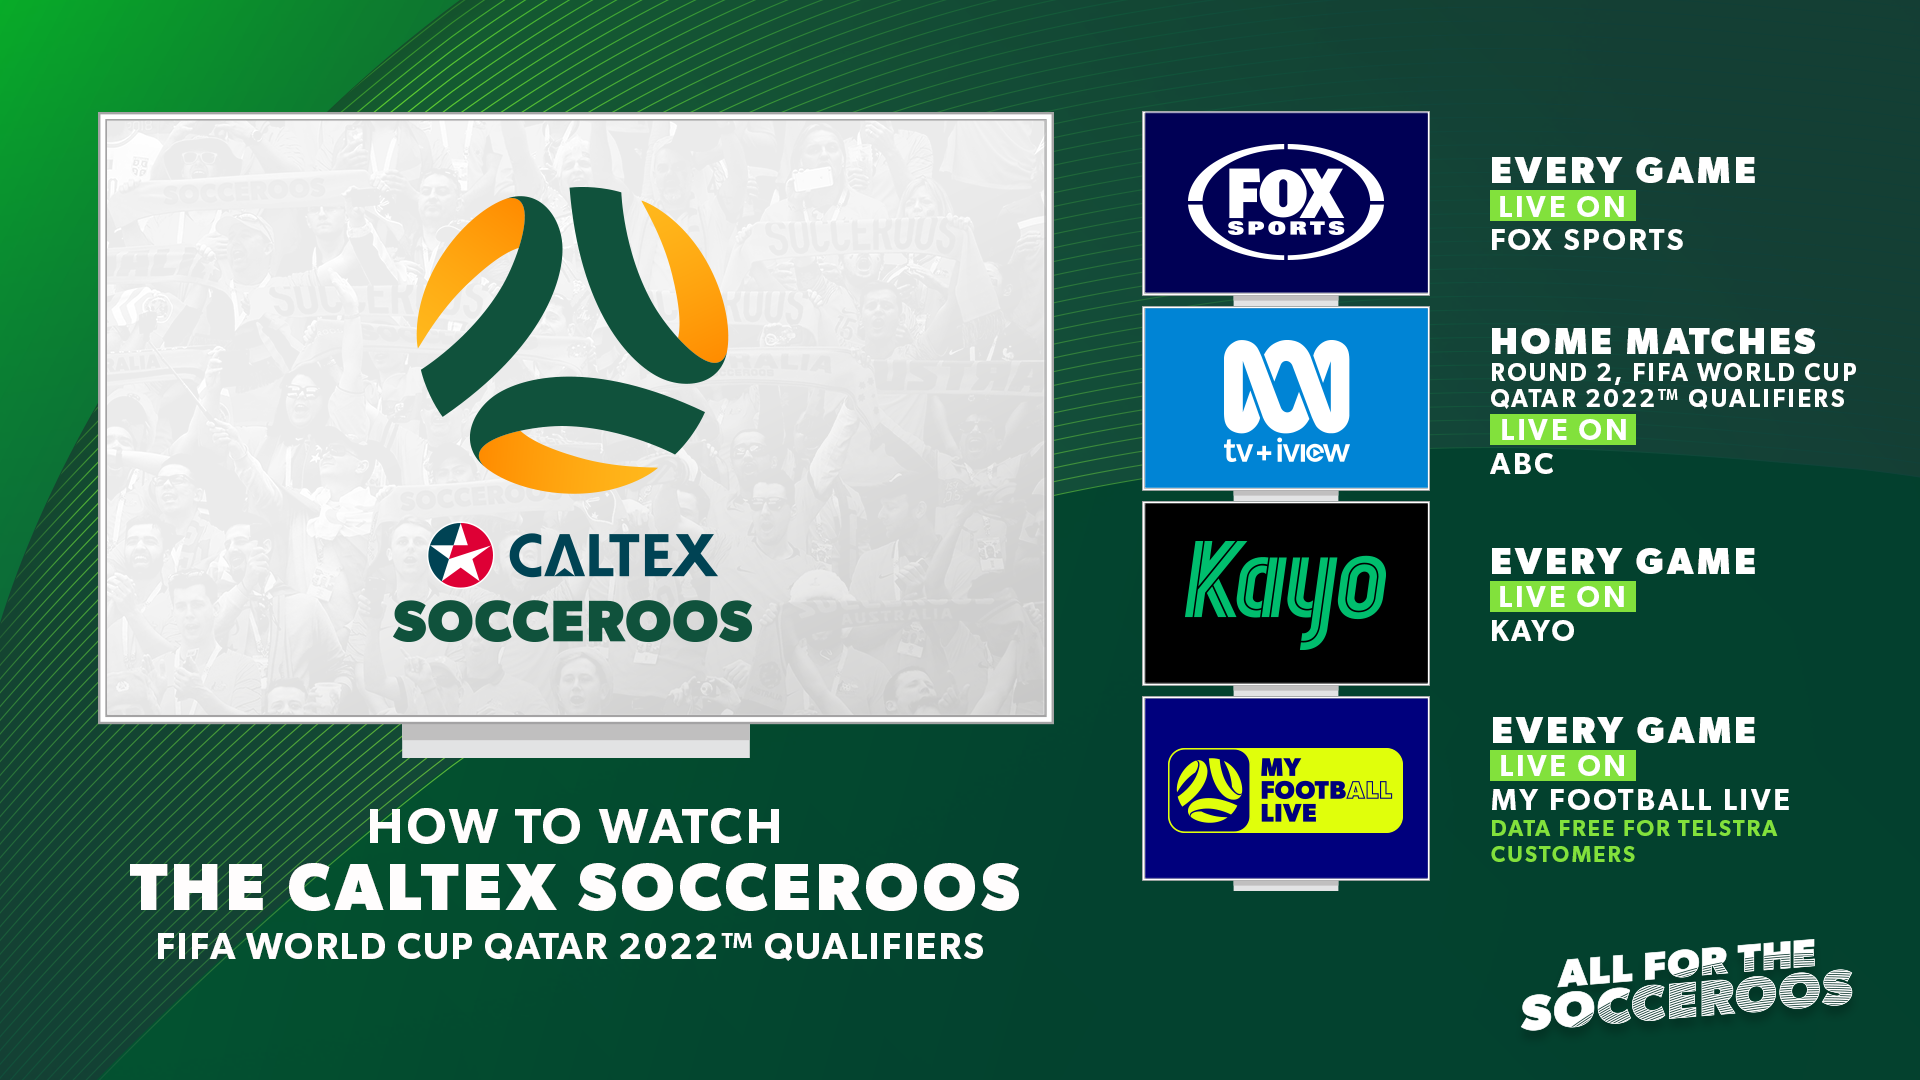 Socceroos broadcast ABC